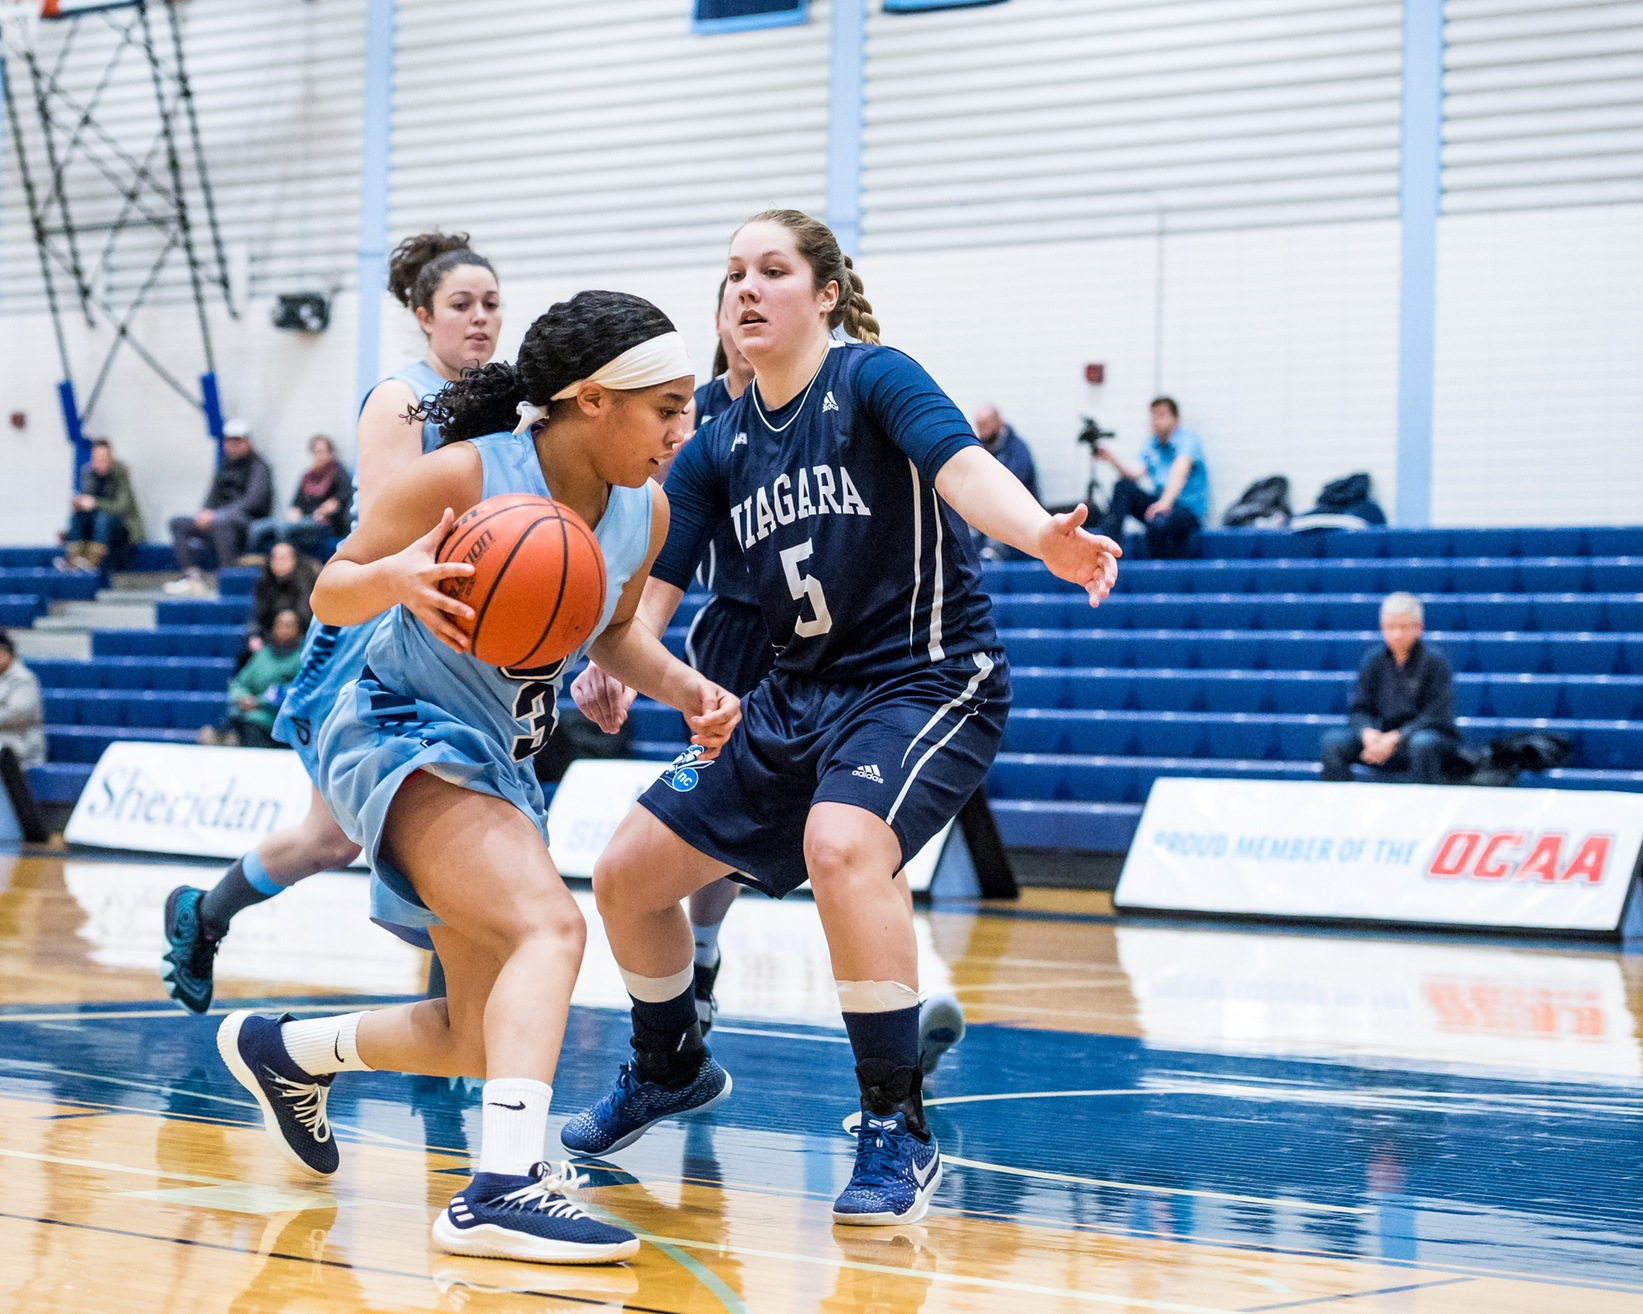 Atkinson named 1st Team-All Star and OCAA Defensive Player of the Year